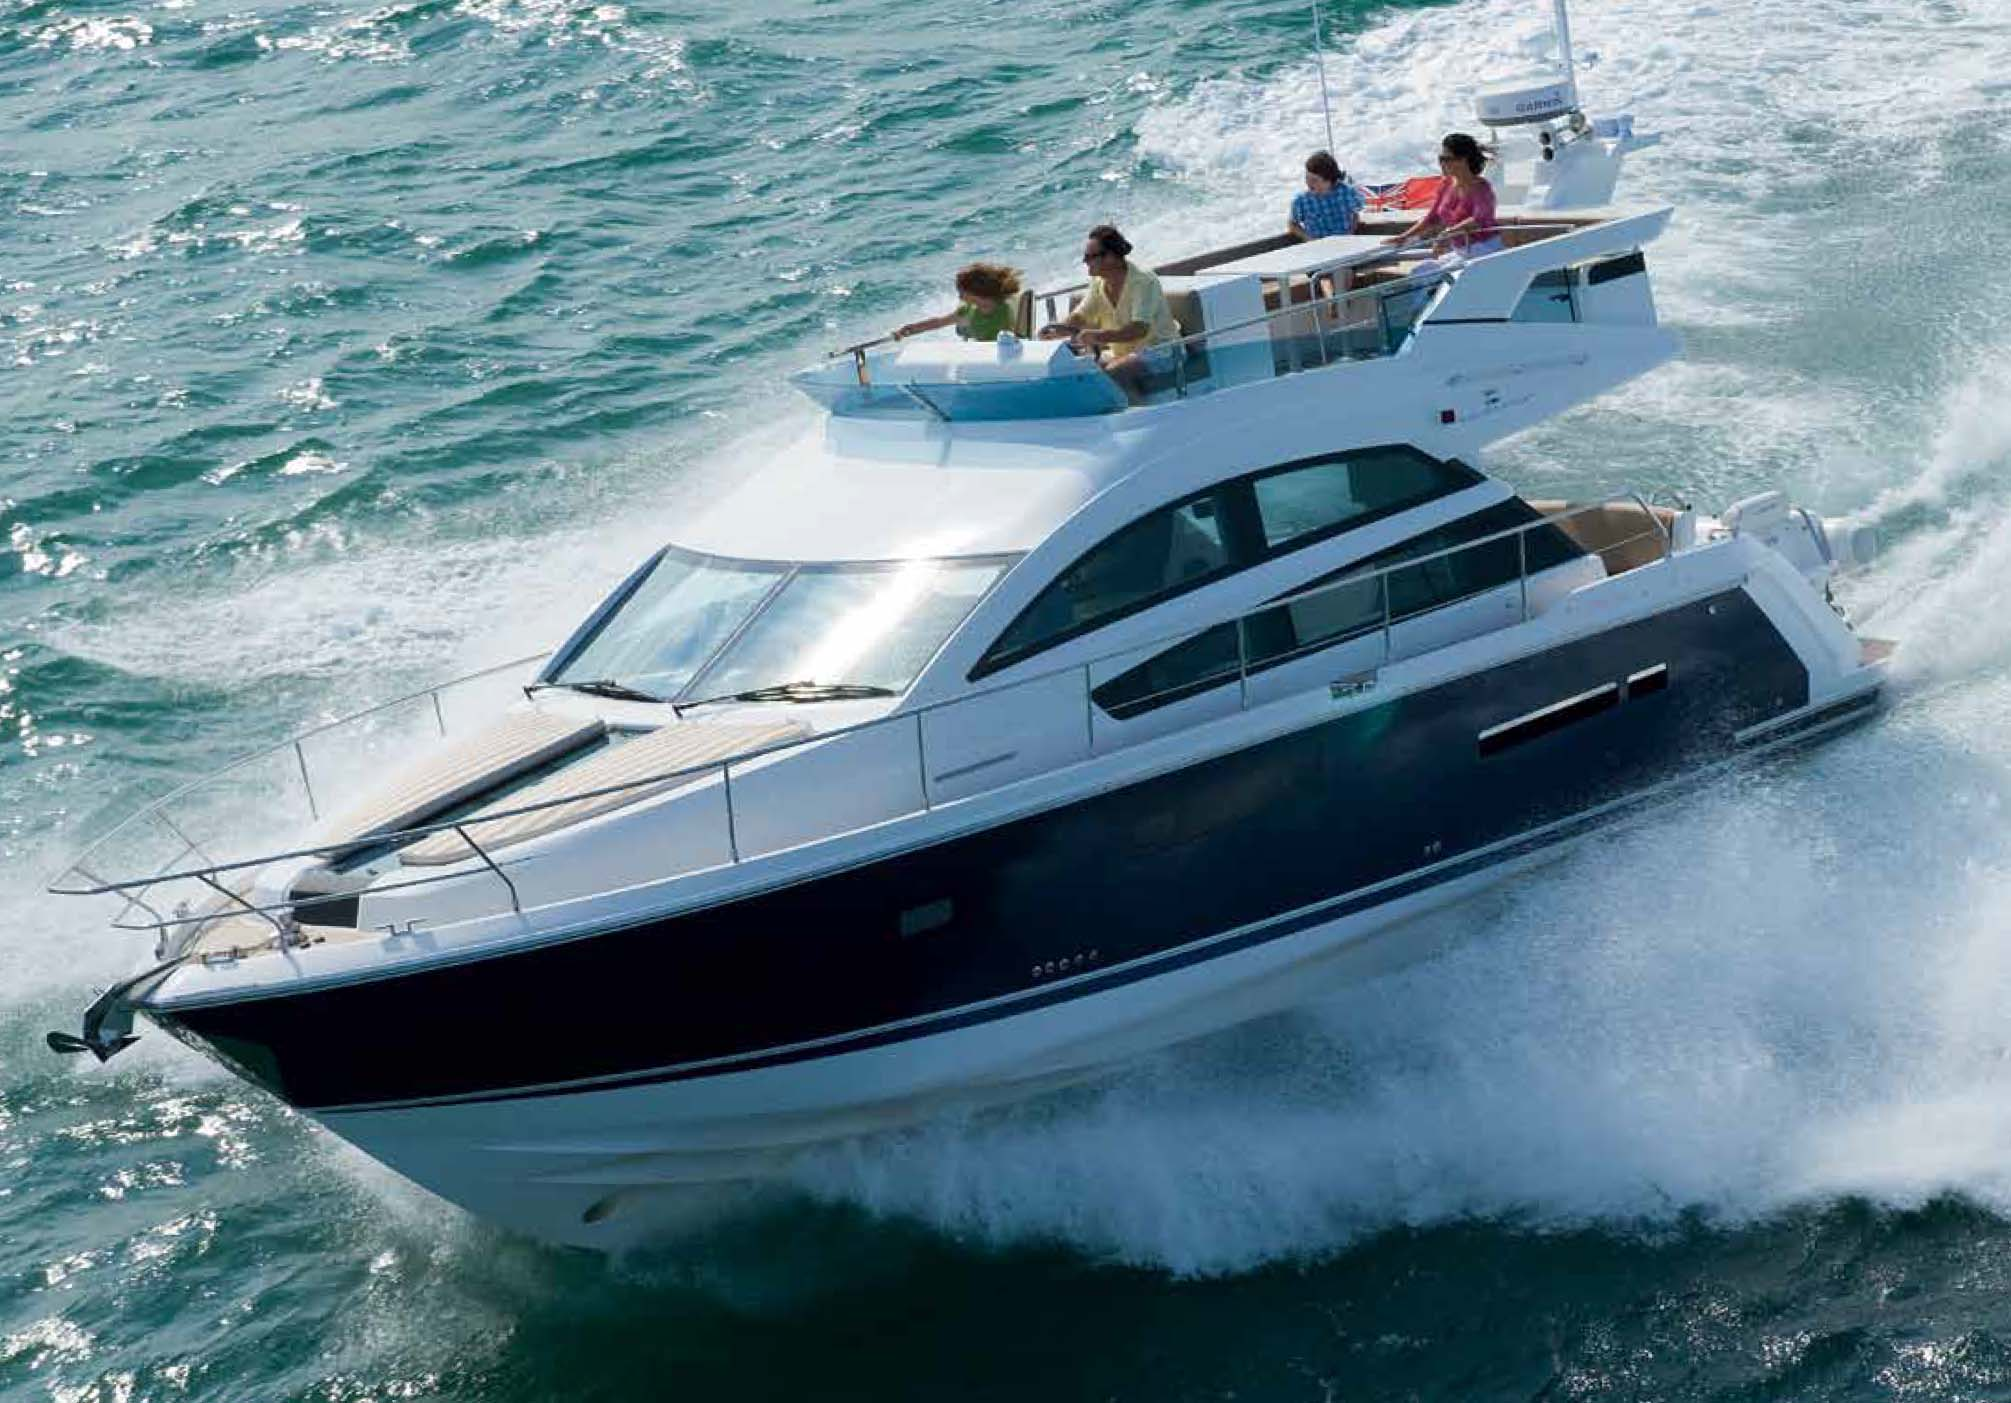 Fairline 42 Squadron Luxury Yacht for sale in San Diego